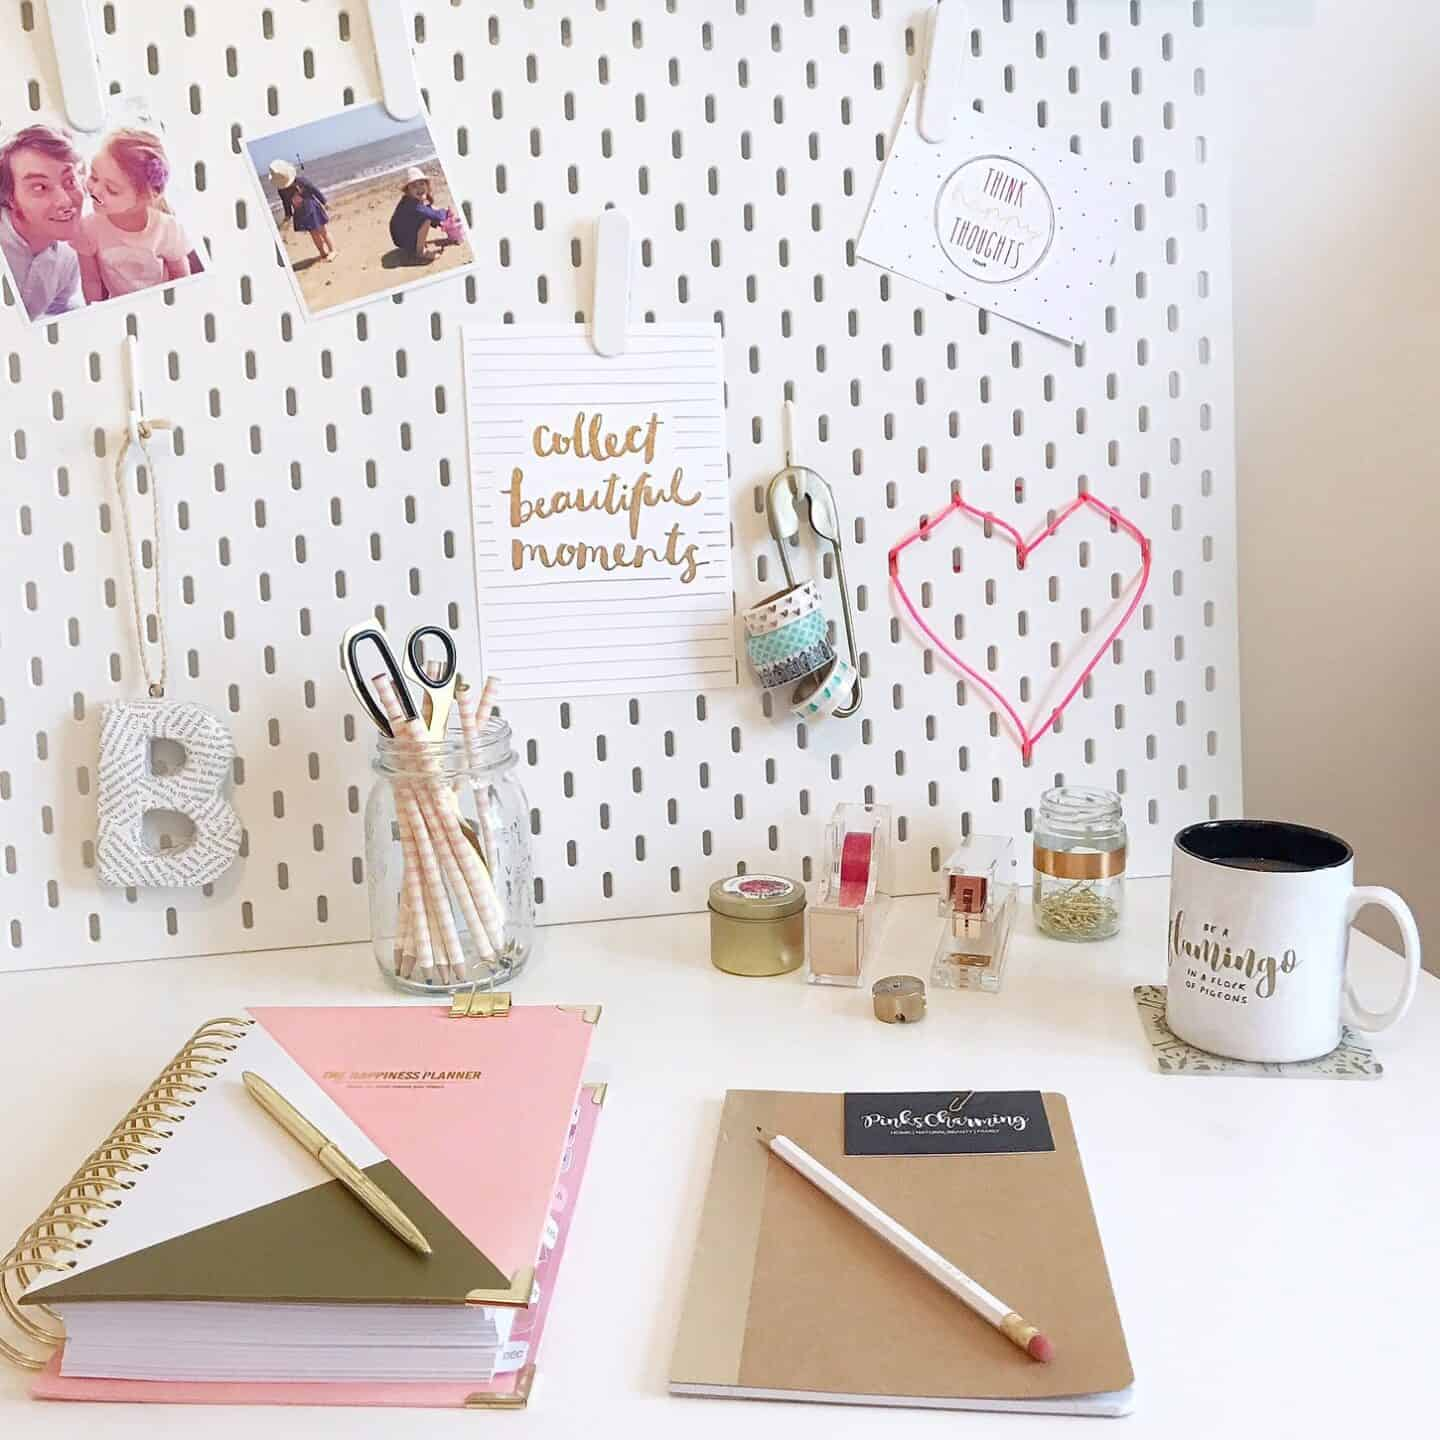 My desk with pink and gold desk accessories